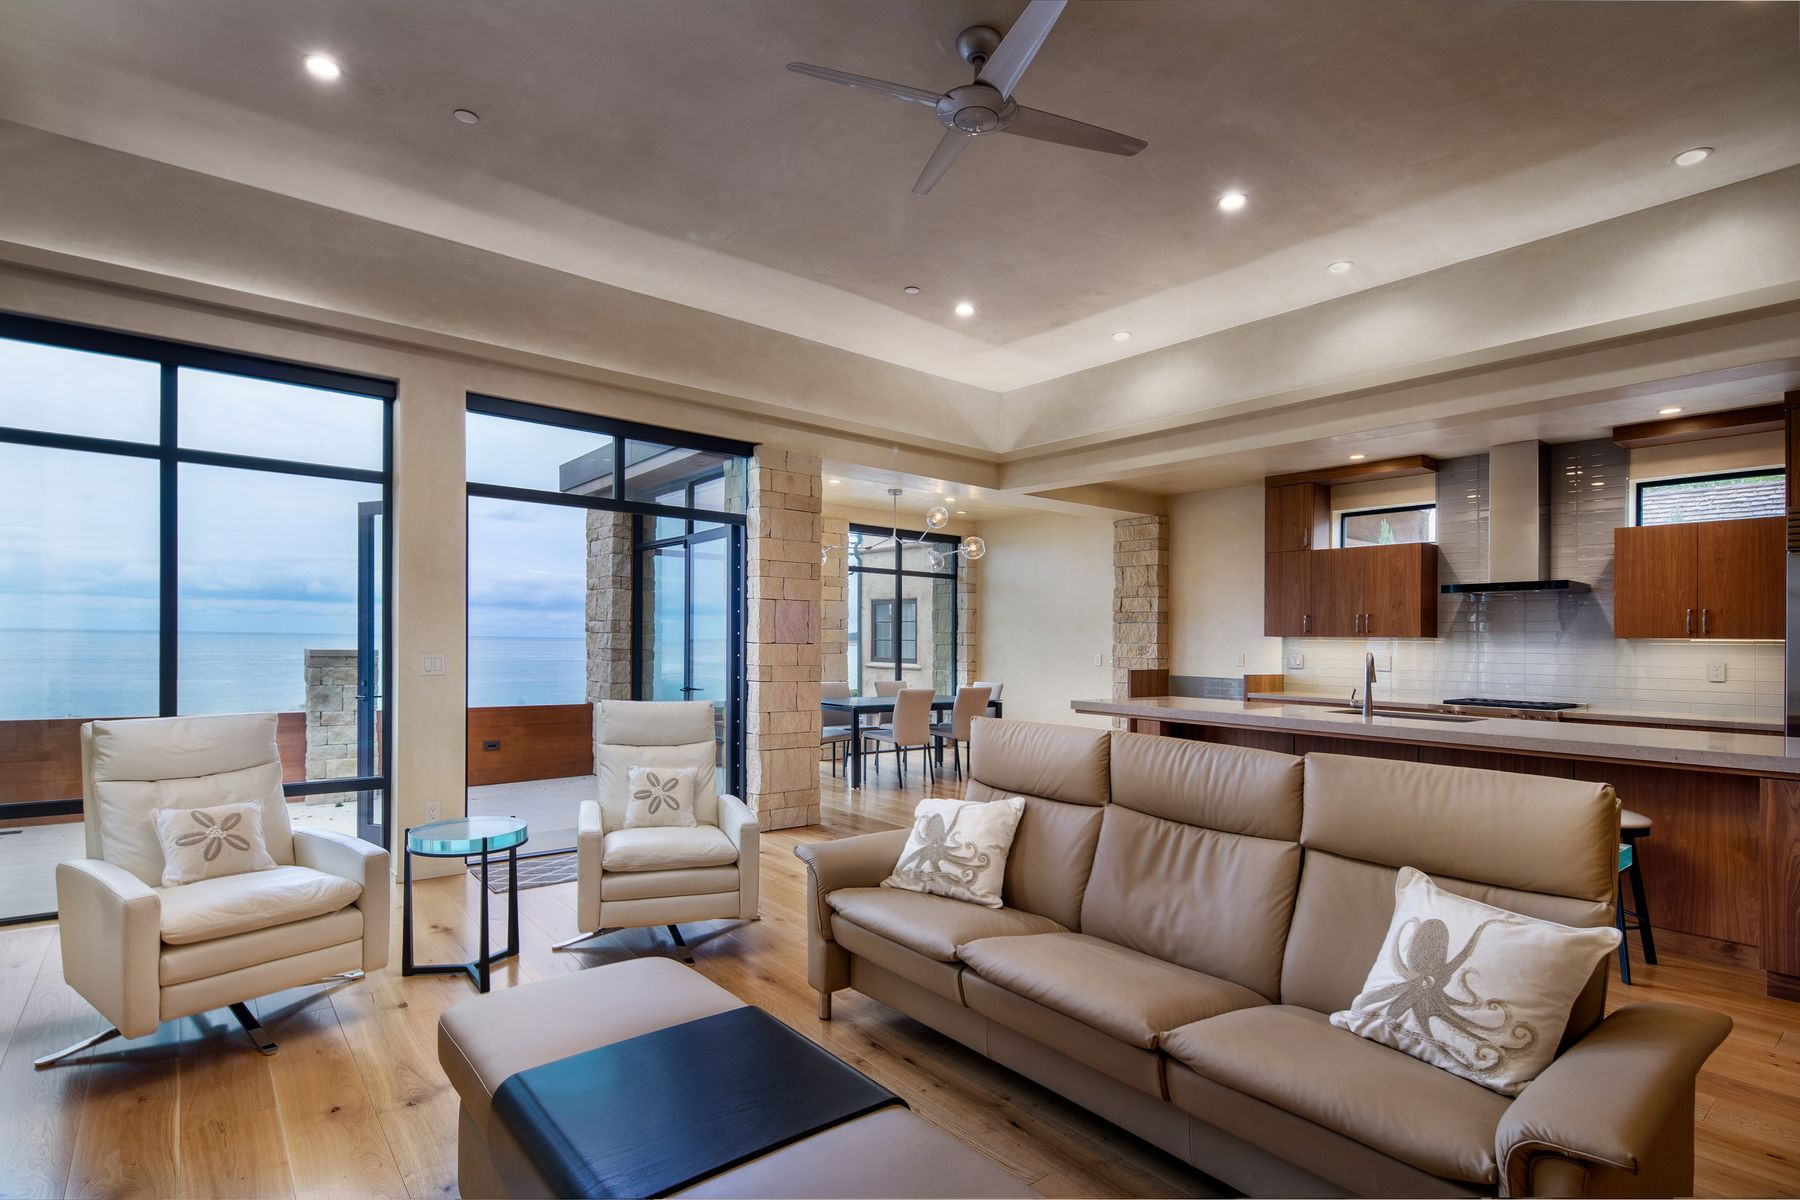 Single Family Home for Sale at Modern Beach House on Scenic Road 0 Scenic 4 Ne Of 13th Carmel By The Sea, California 93921 United States